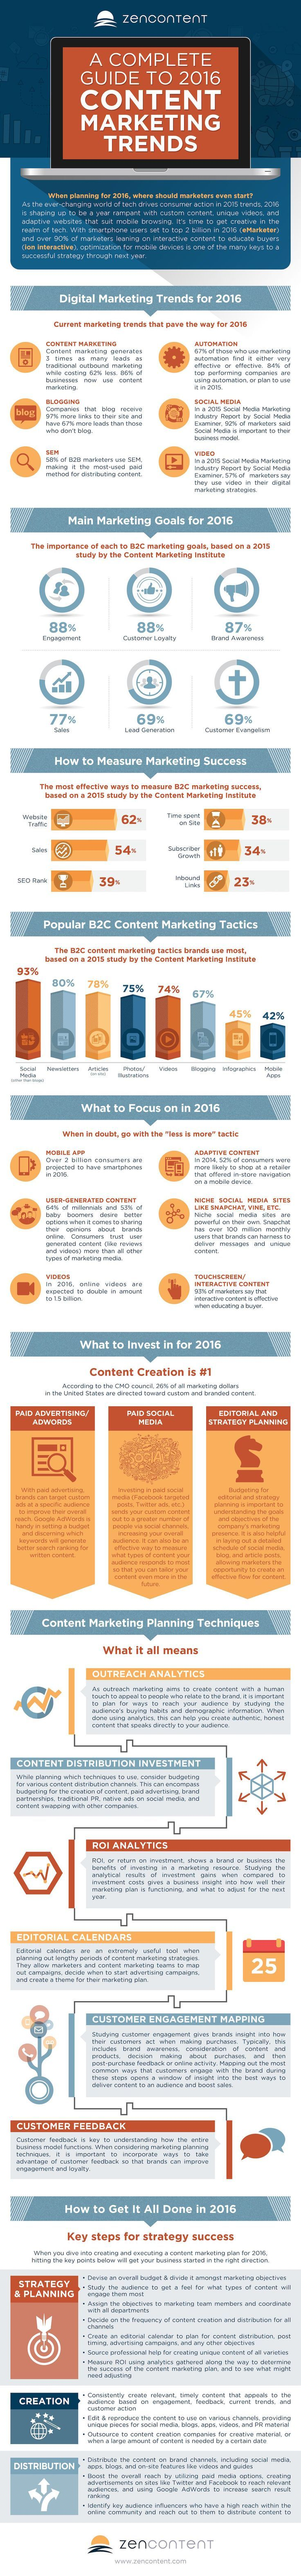 A Complete Guide to 2016 Content Marketing Trends #Infographic #ContentMarketing